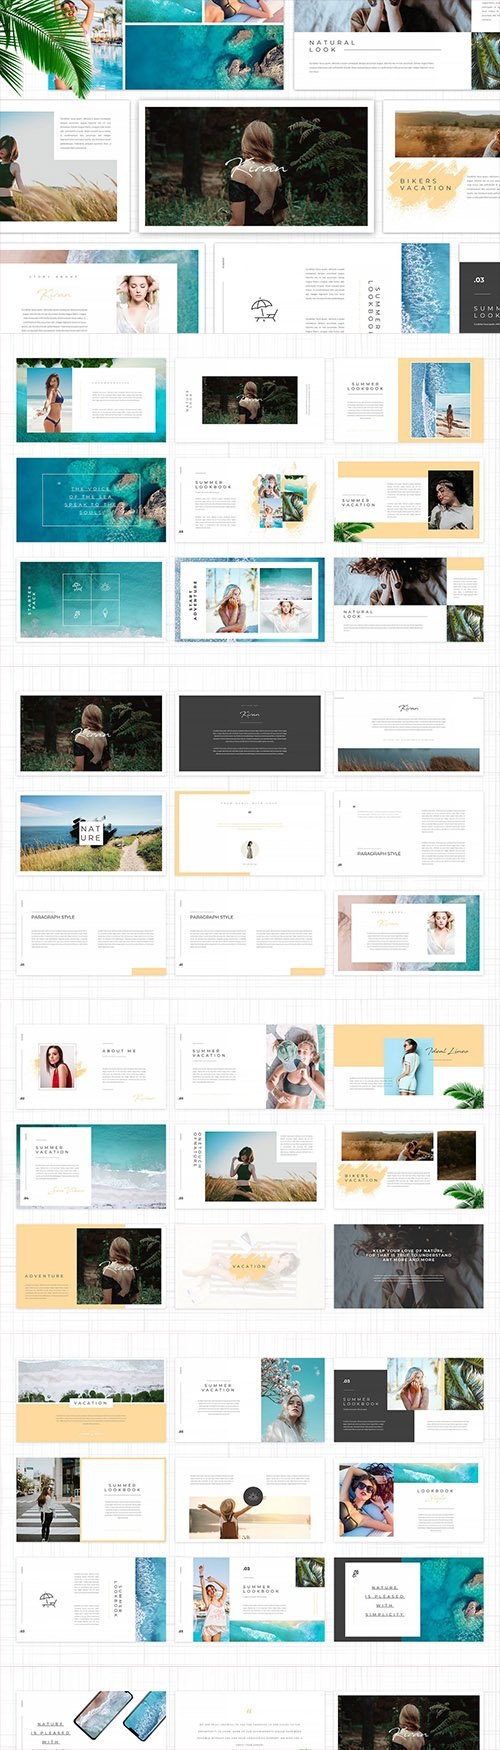 Kiran - Powerpoint Template